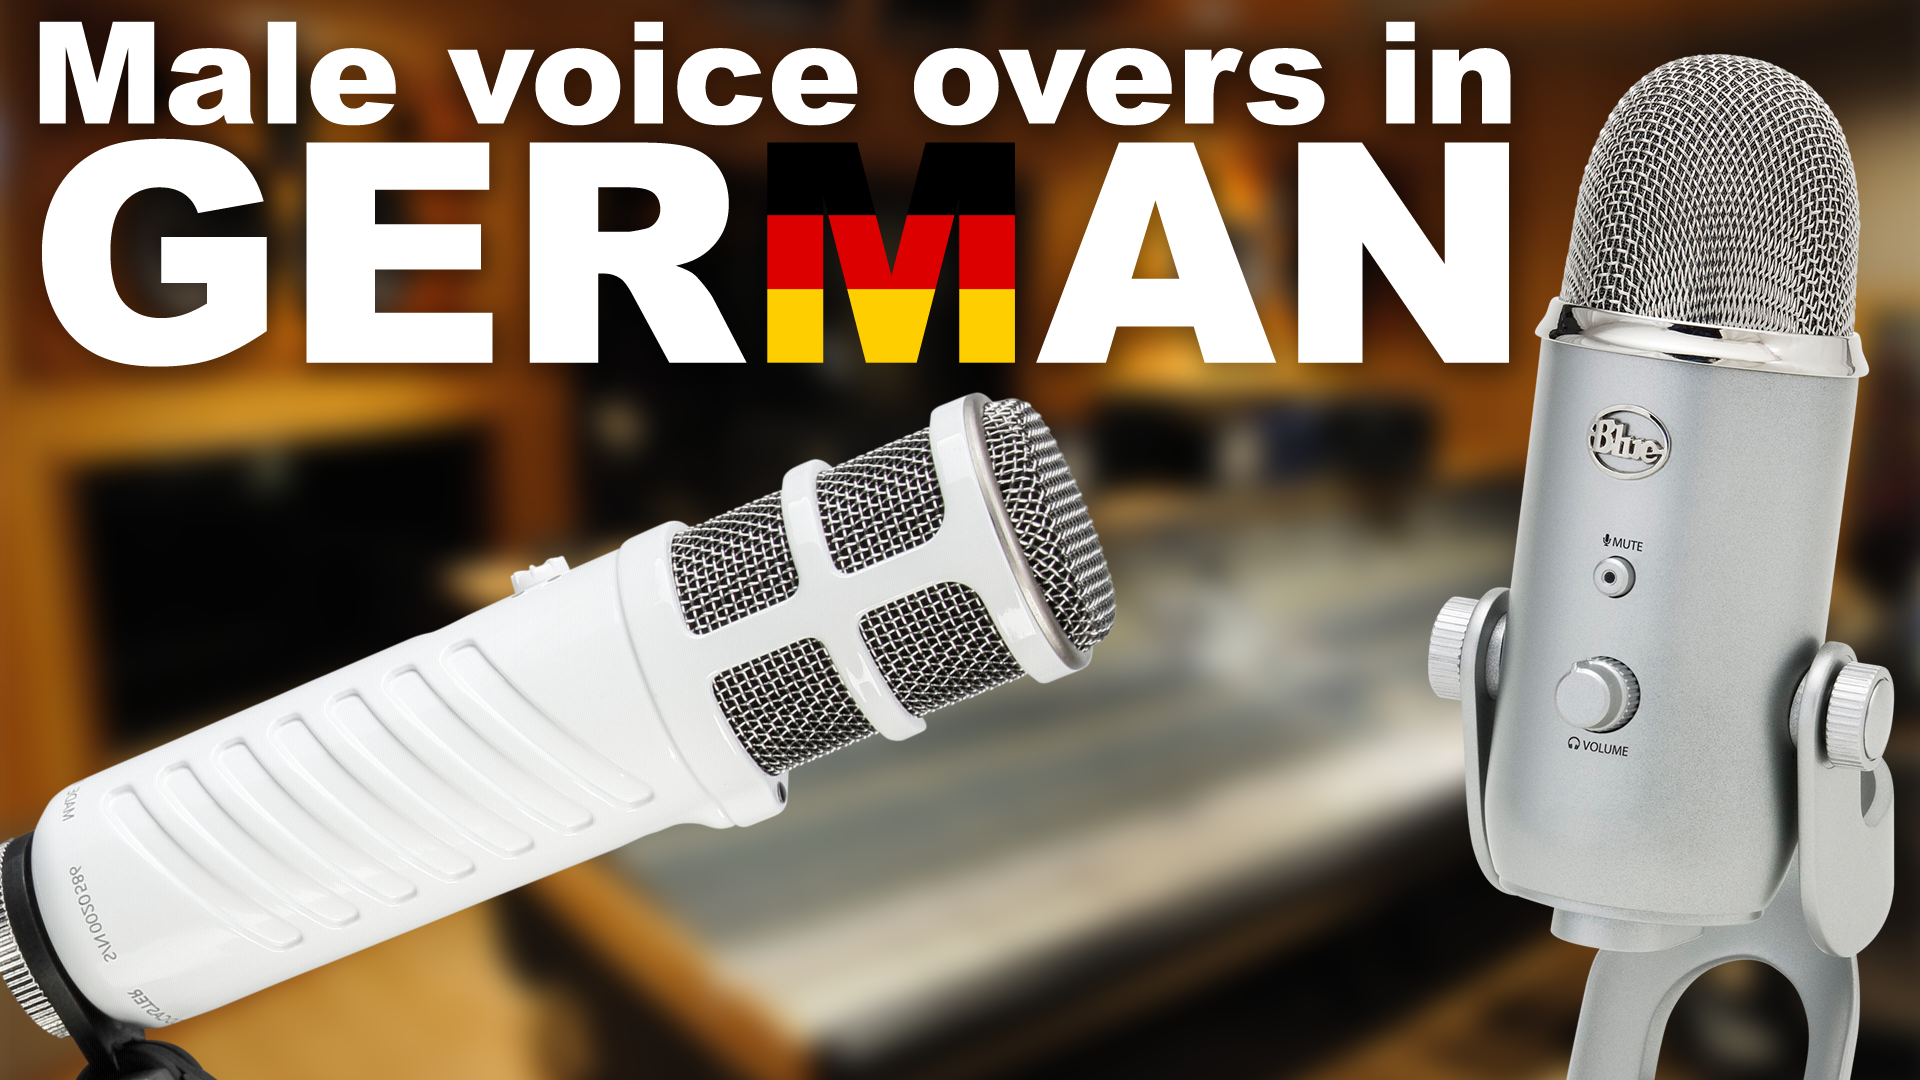 record a professional male voiceover in German